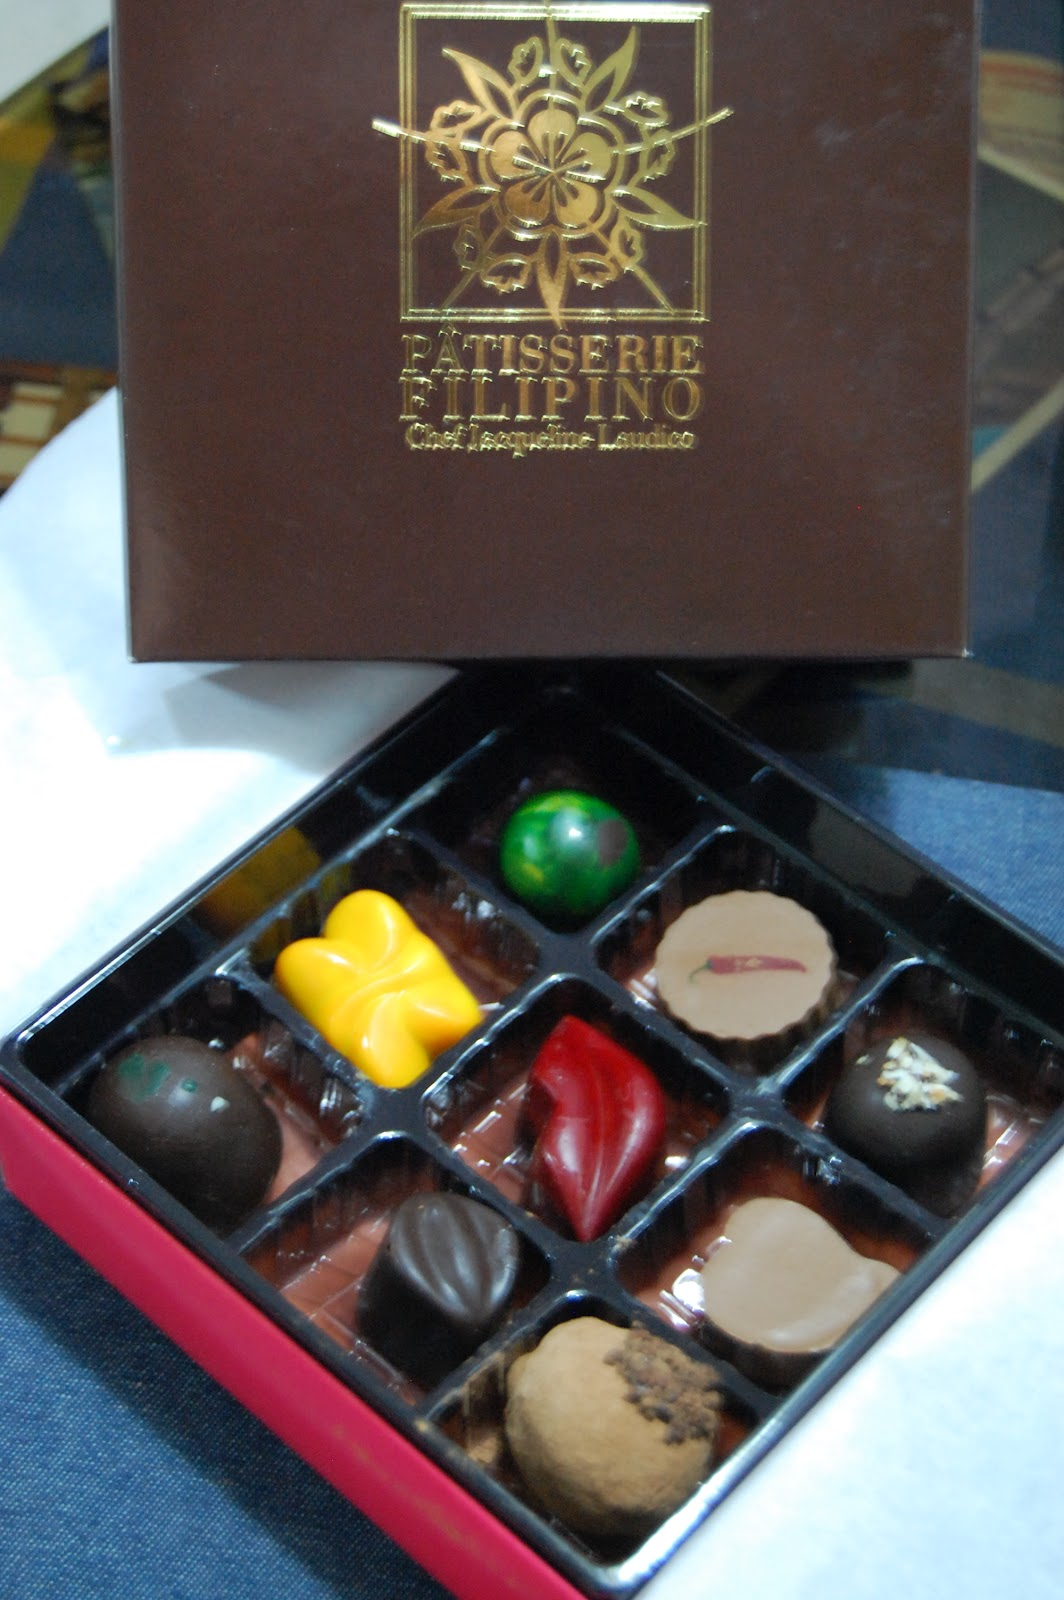 Pinoy Chocophile: Patisserie Filipino by Chef Jacqueline Laudico